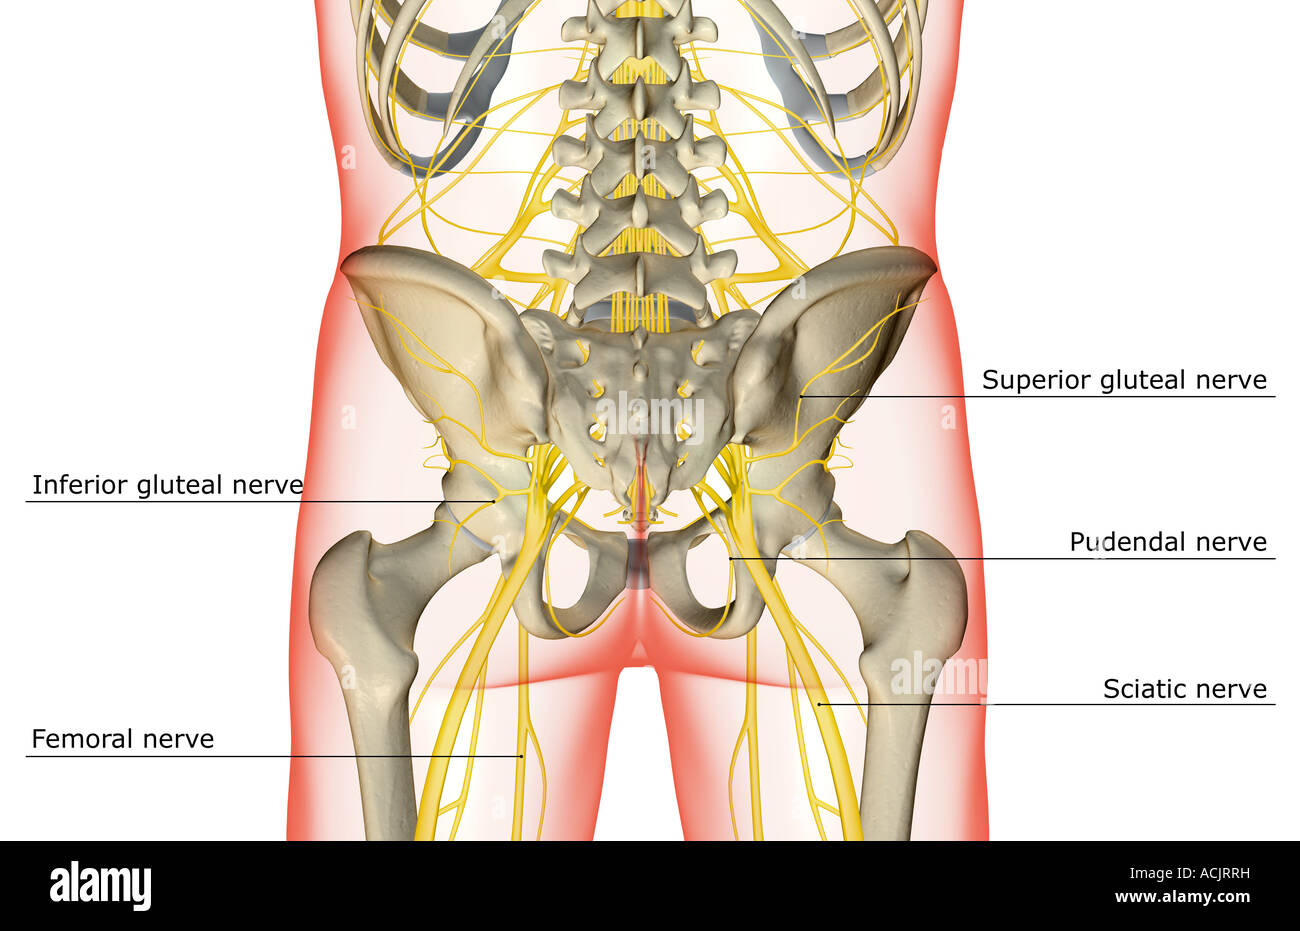 hight resolution of the nerves of the lower body